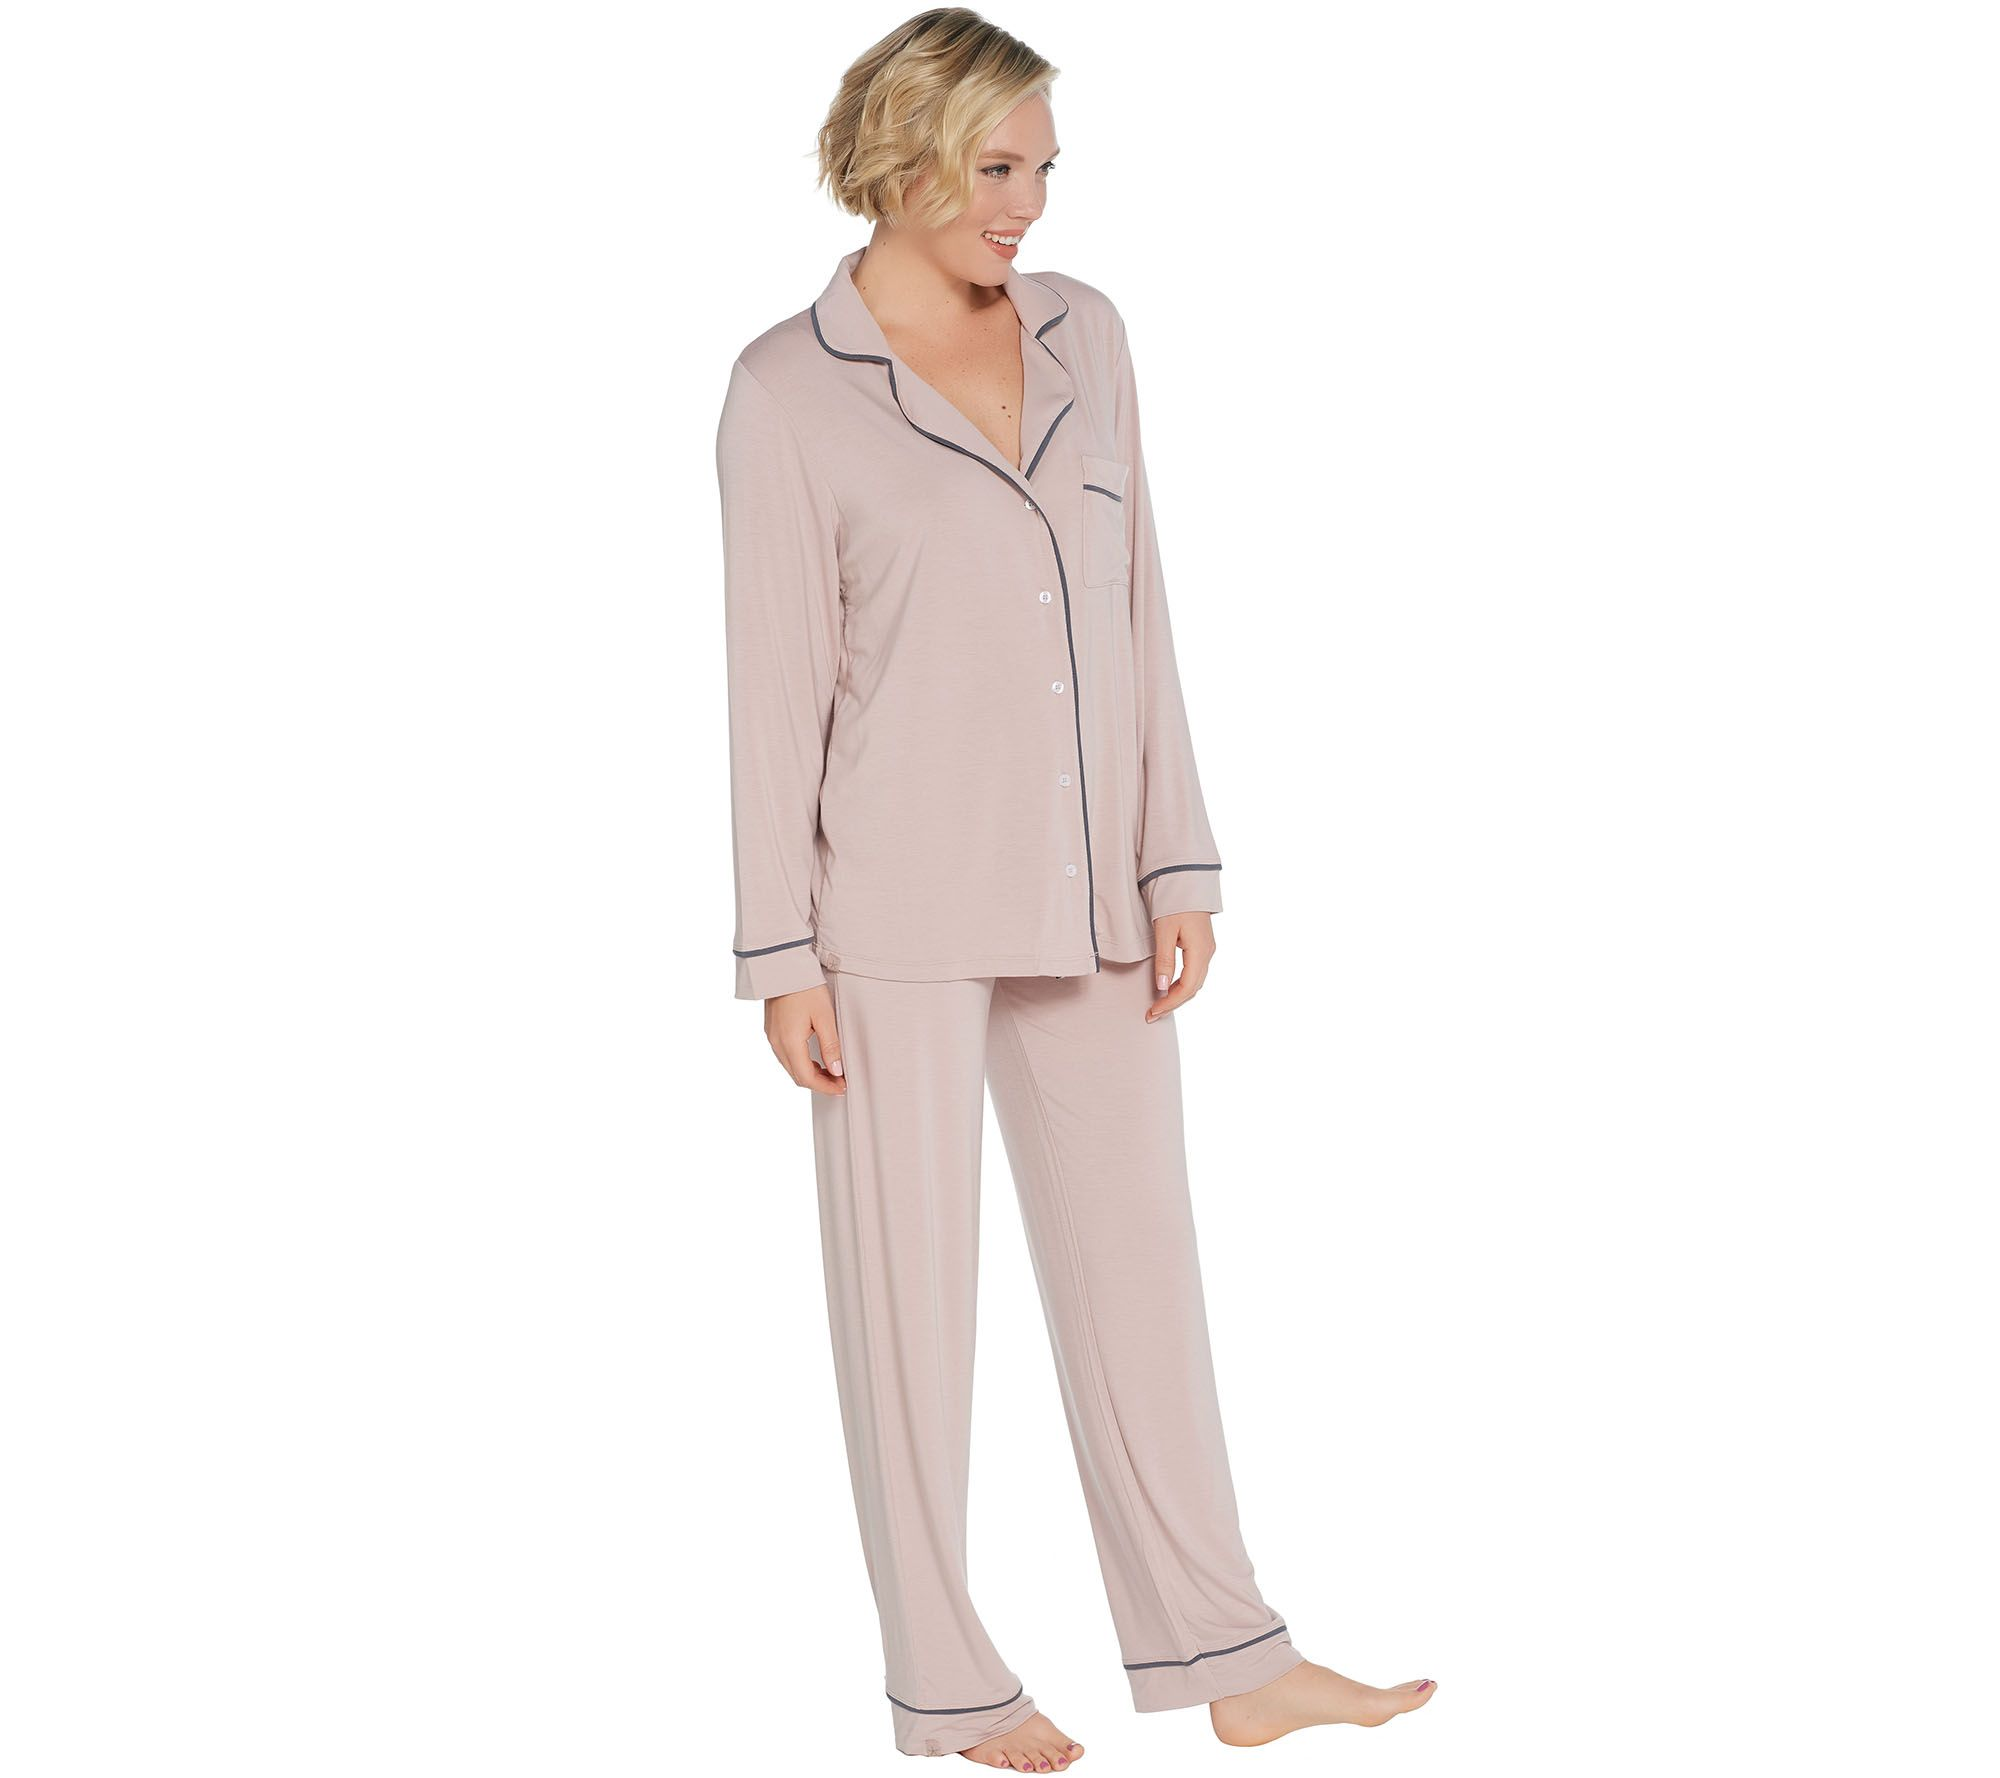 Barefoot Dreams Luxe Milk Jersey Piped Pajama Set - Page 1 — QVC.com b048300ed